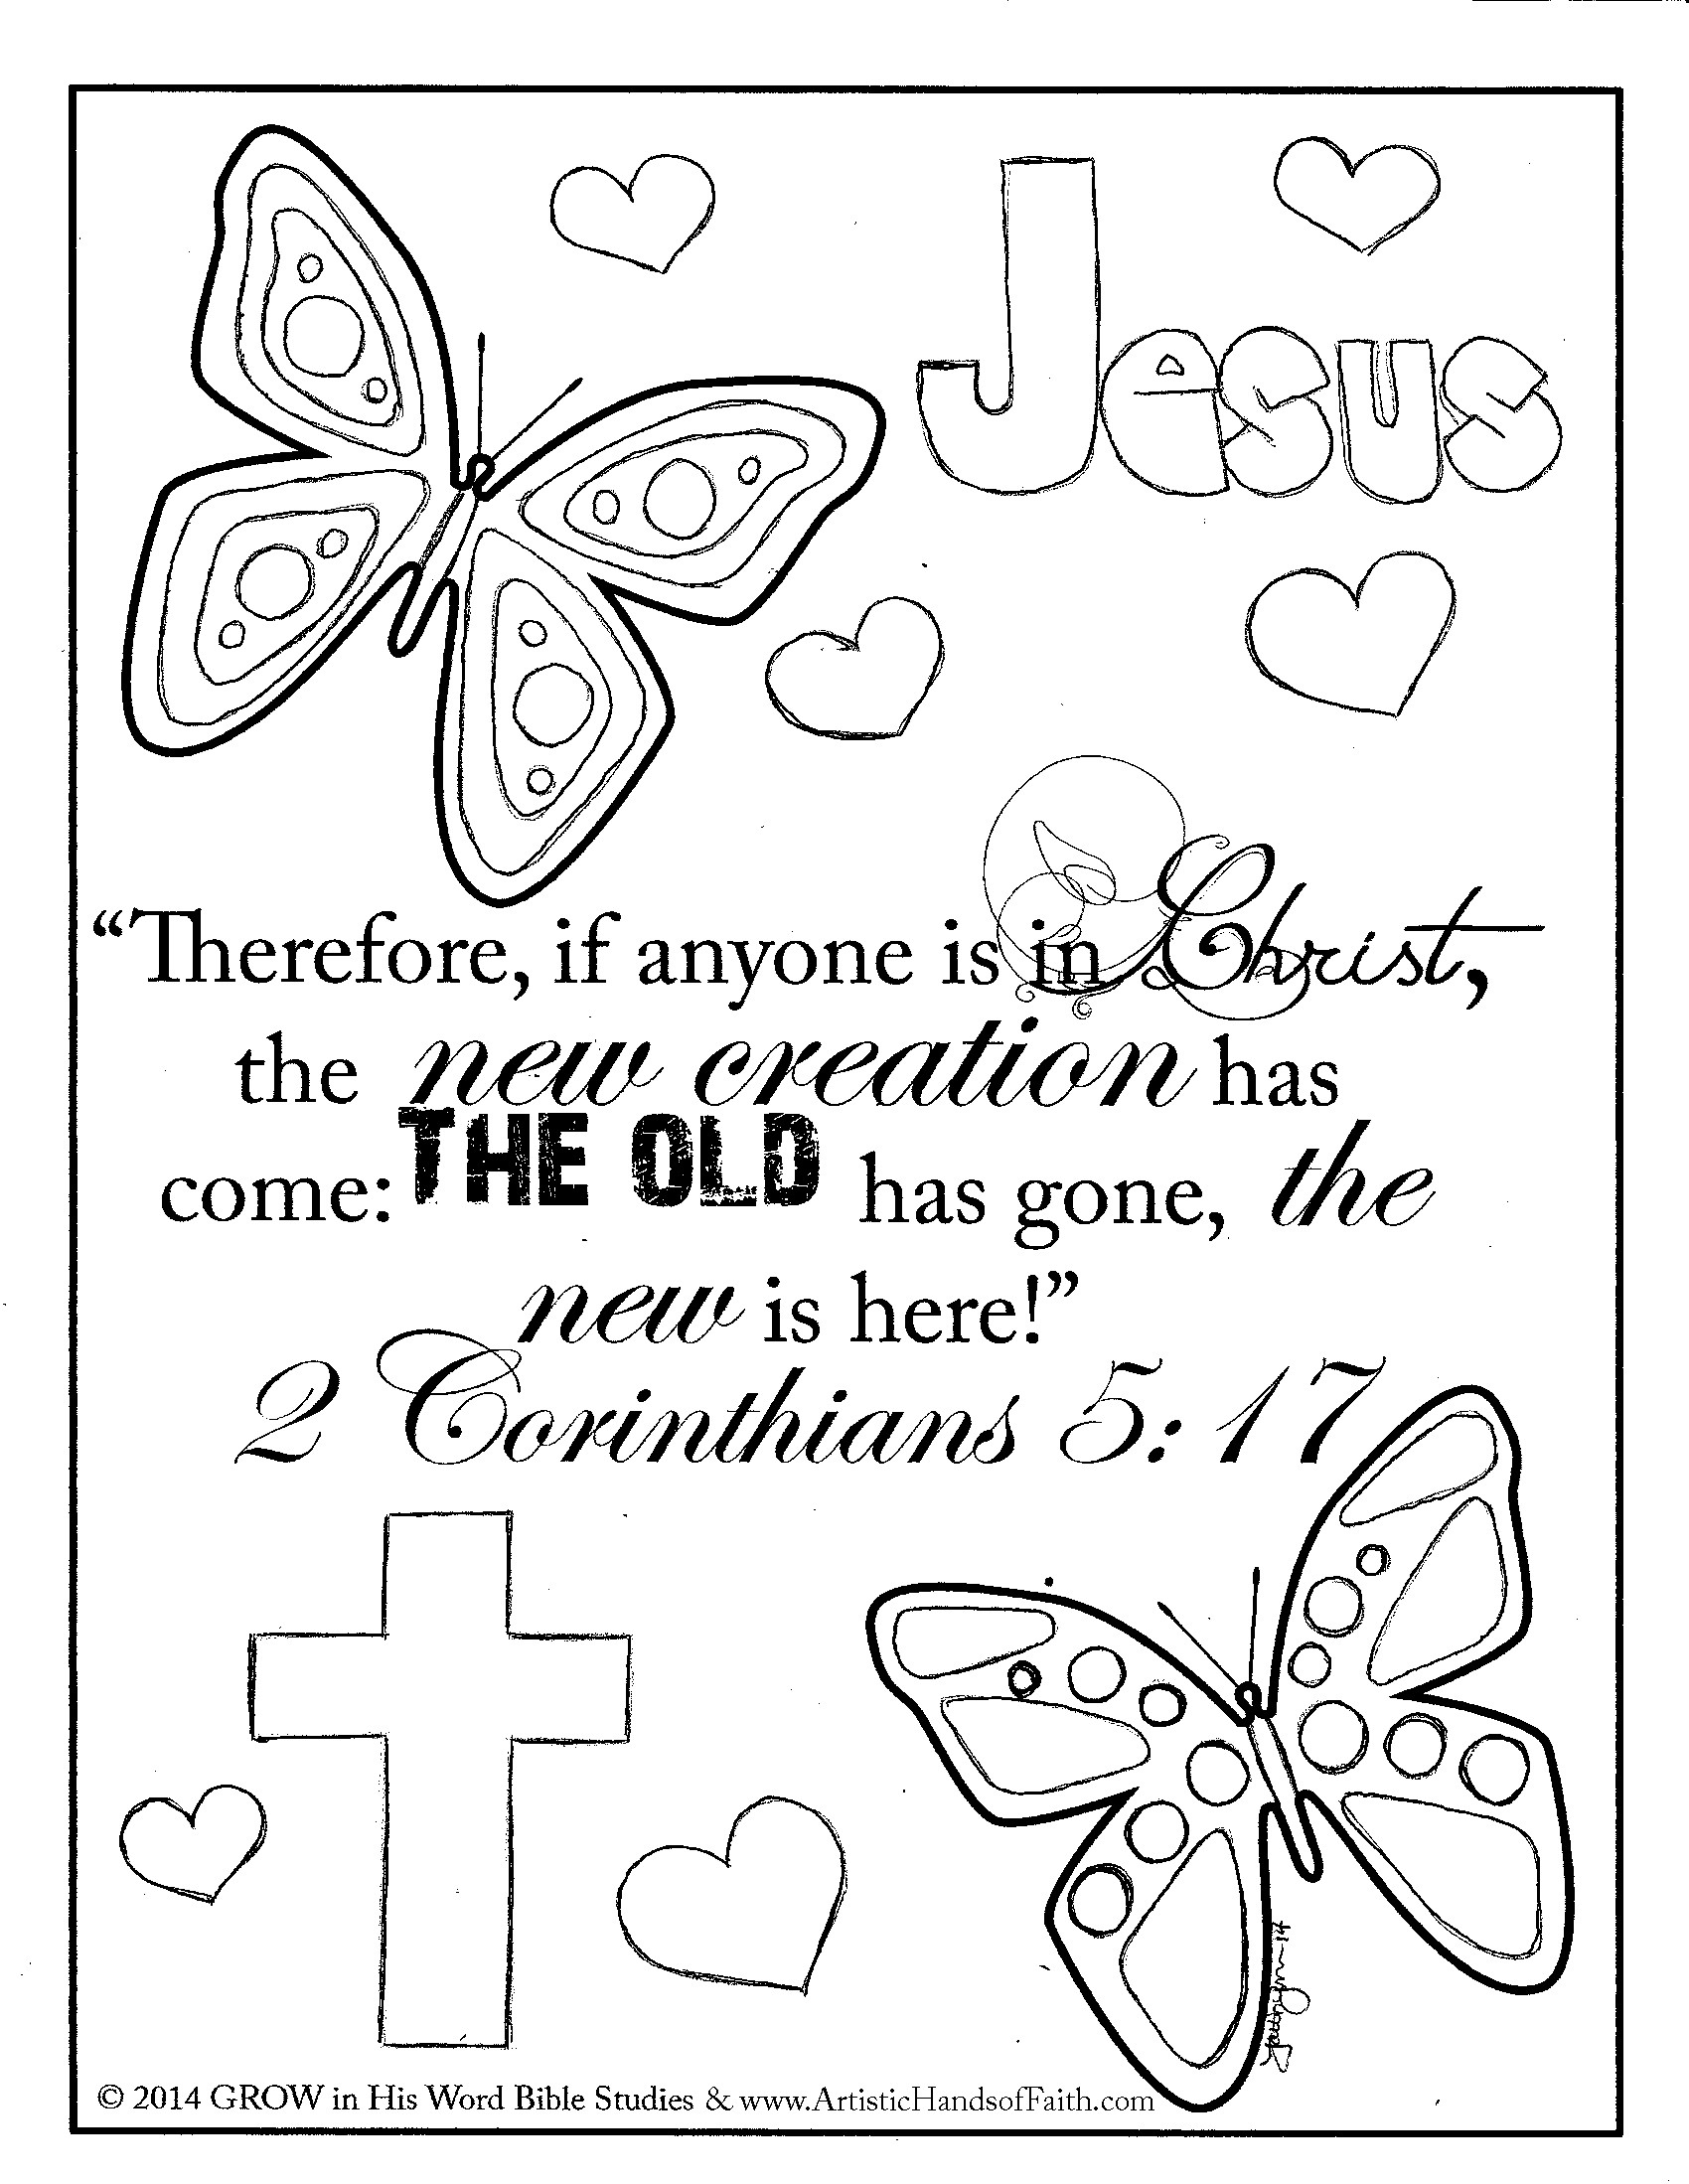 Free Bible Verse Coloring Pages  Download Amazing Printable Bible Coloring Pages With